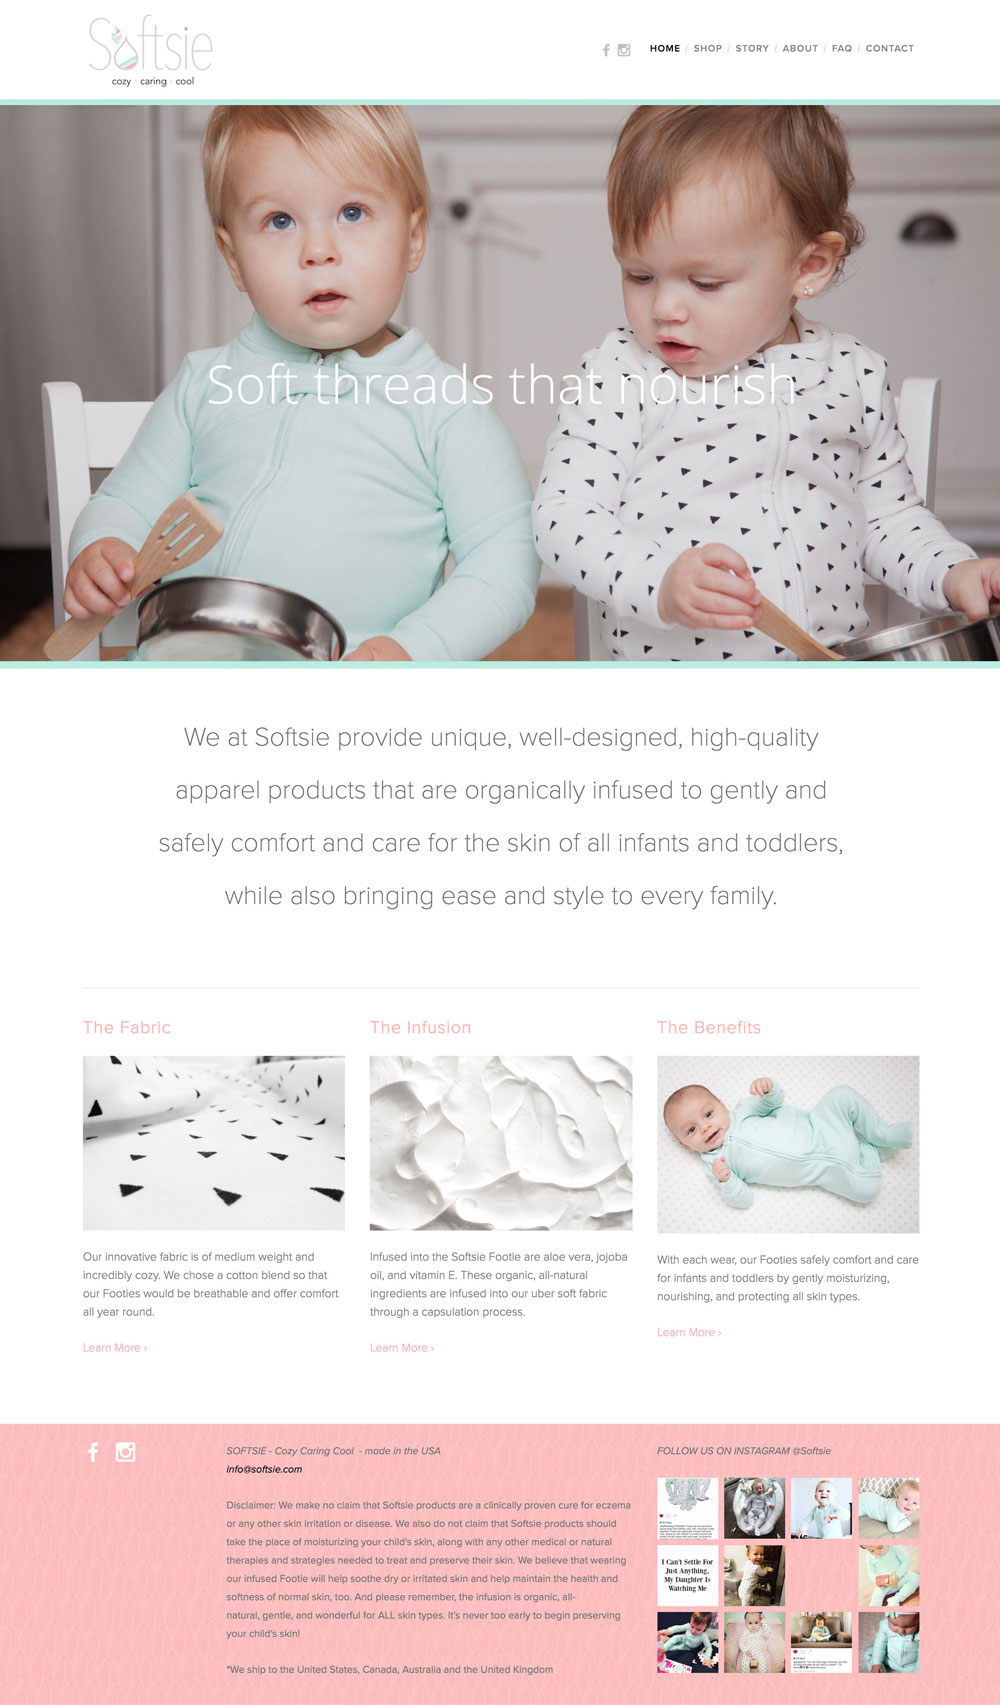 Softsie - Website - Home Page